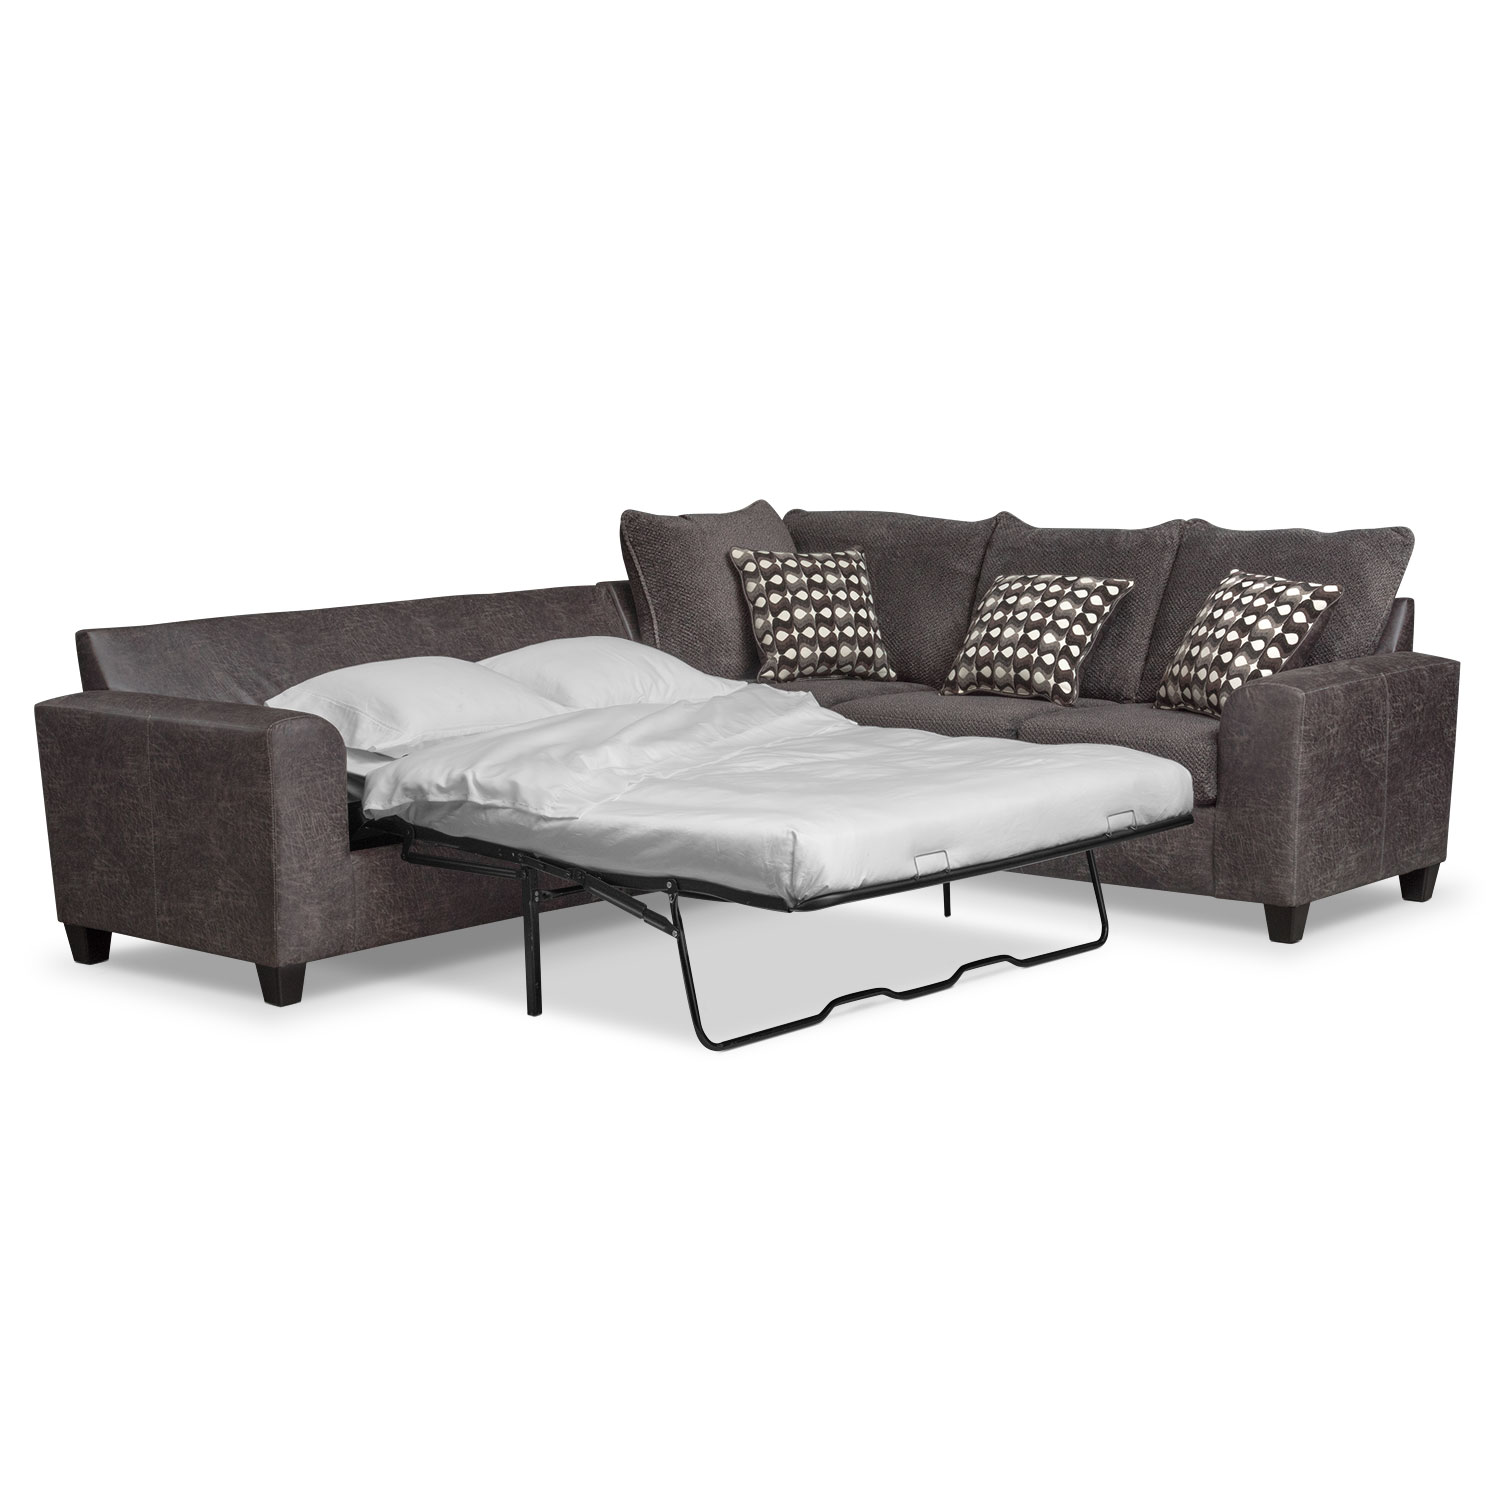 Brando 3-Piece Innerspring Sleeper Sectional - Smoke